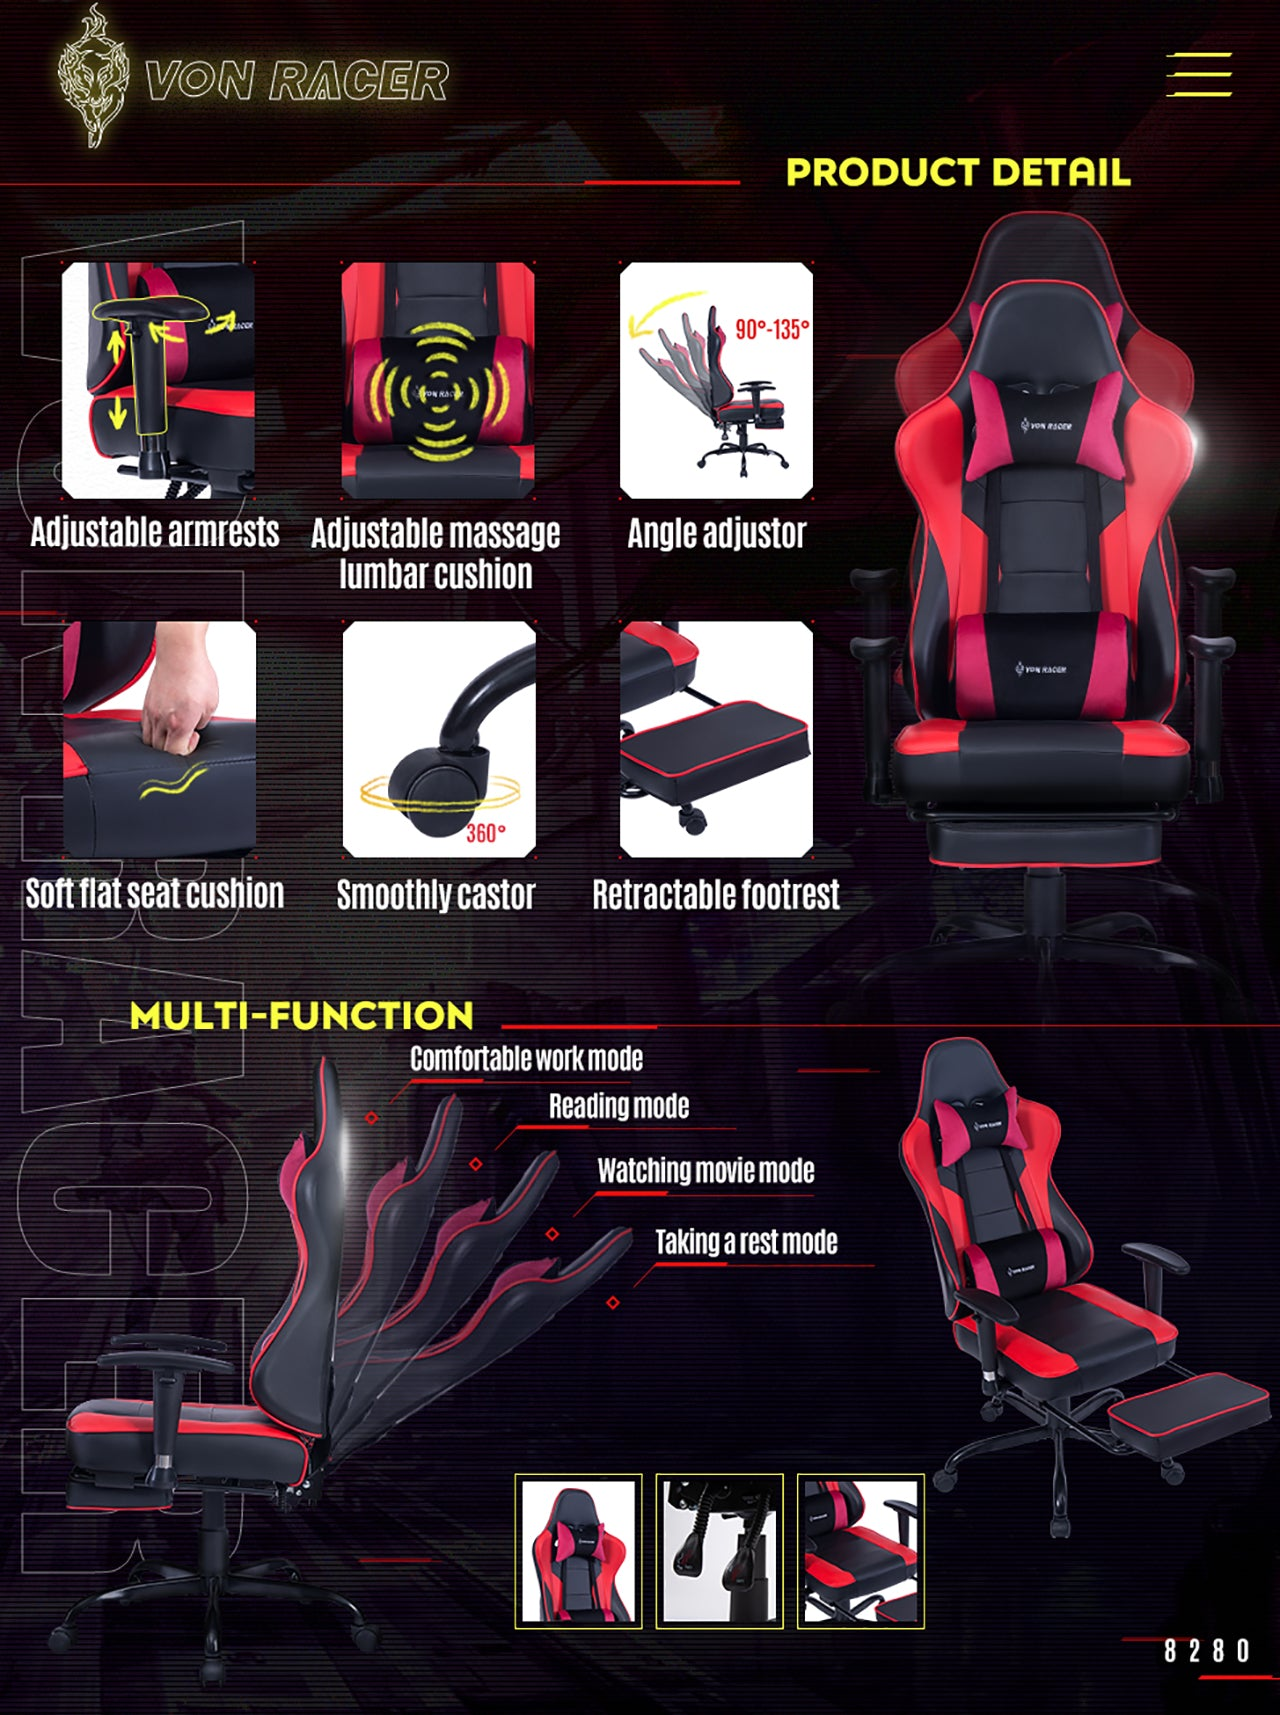 VON RACER ERGONOMIC GAMING CHAIR 8280 RED FEATURES